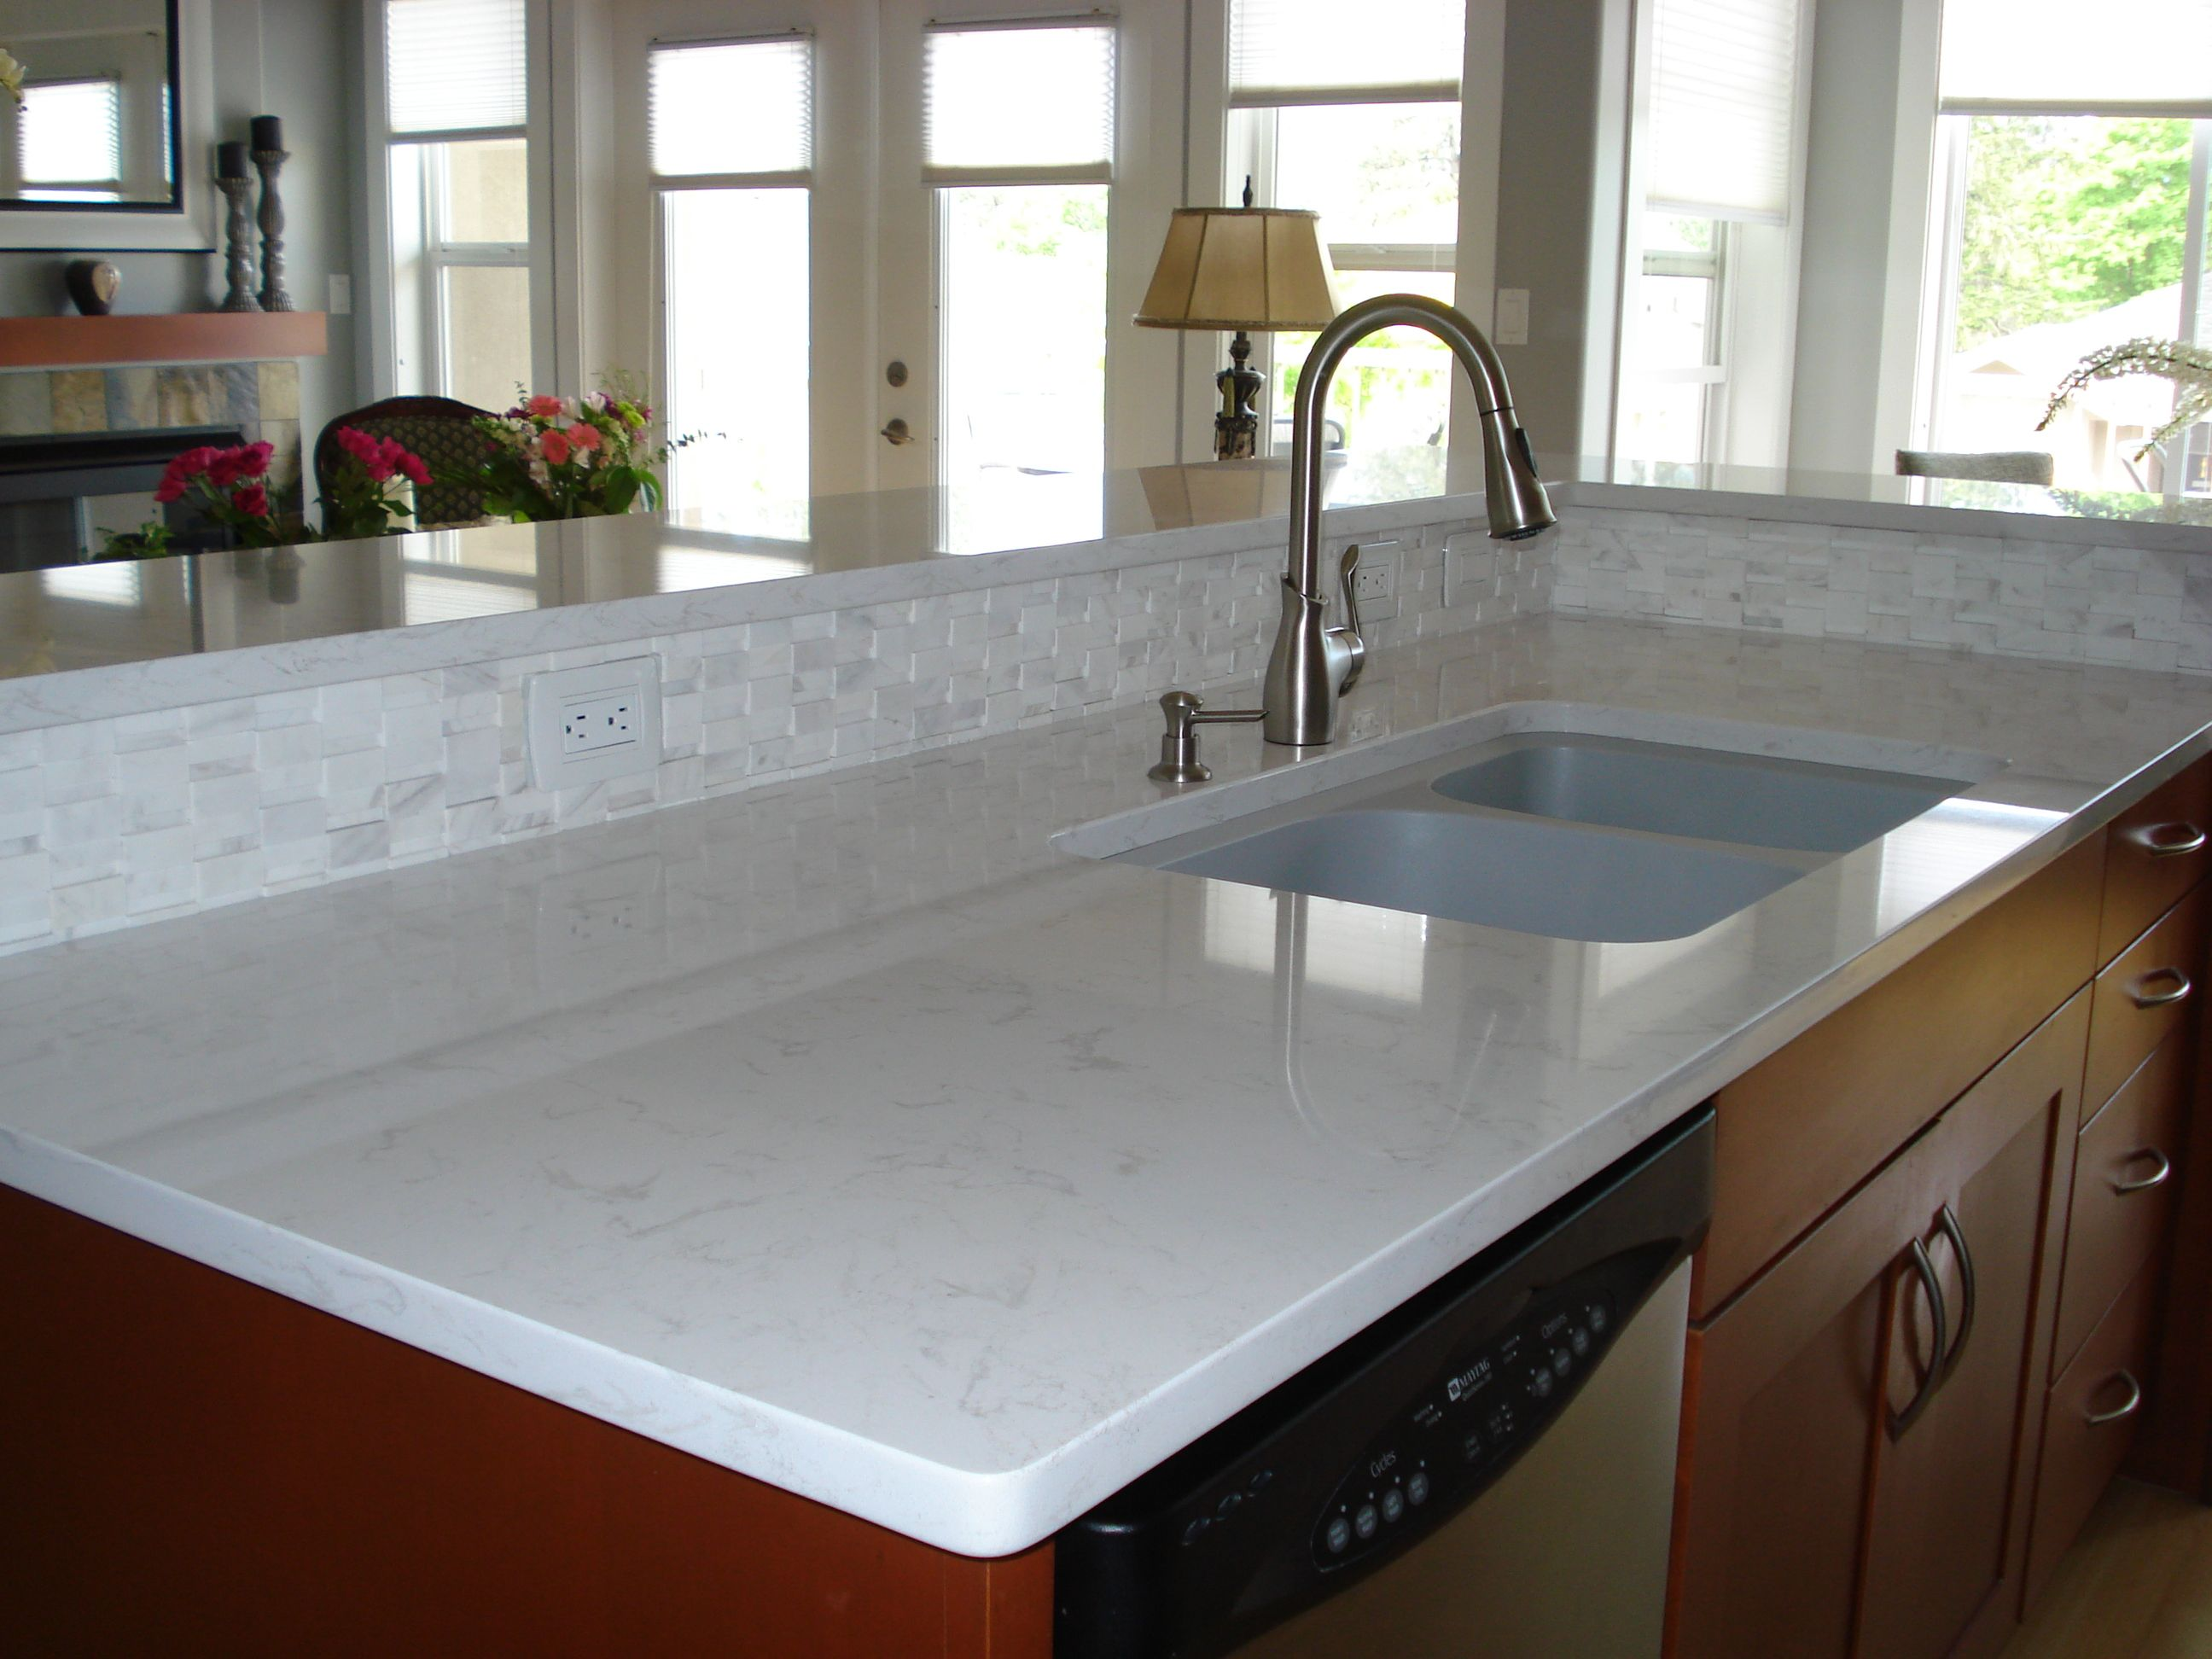 Light Quartz Counters, Backsplash